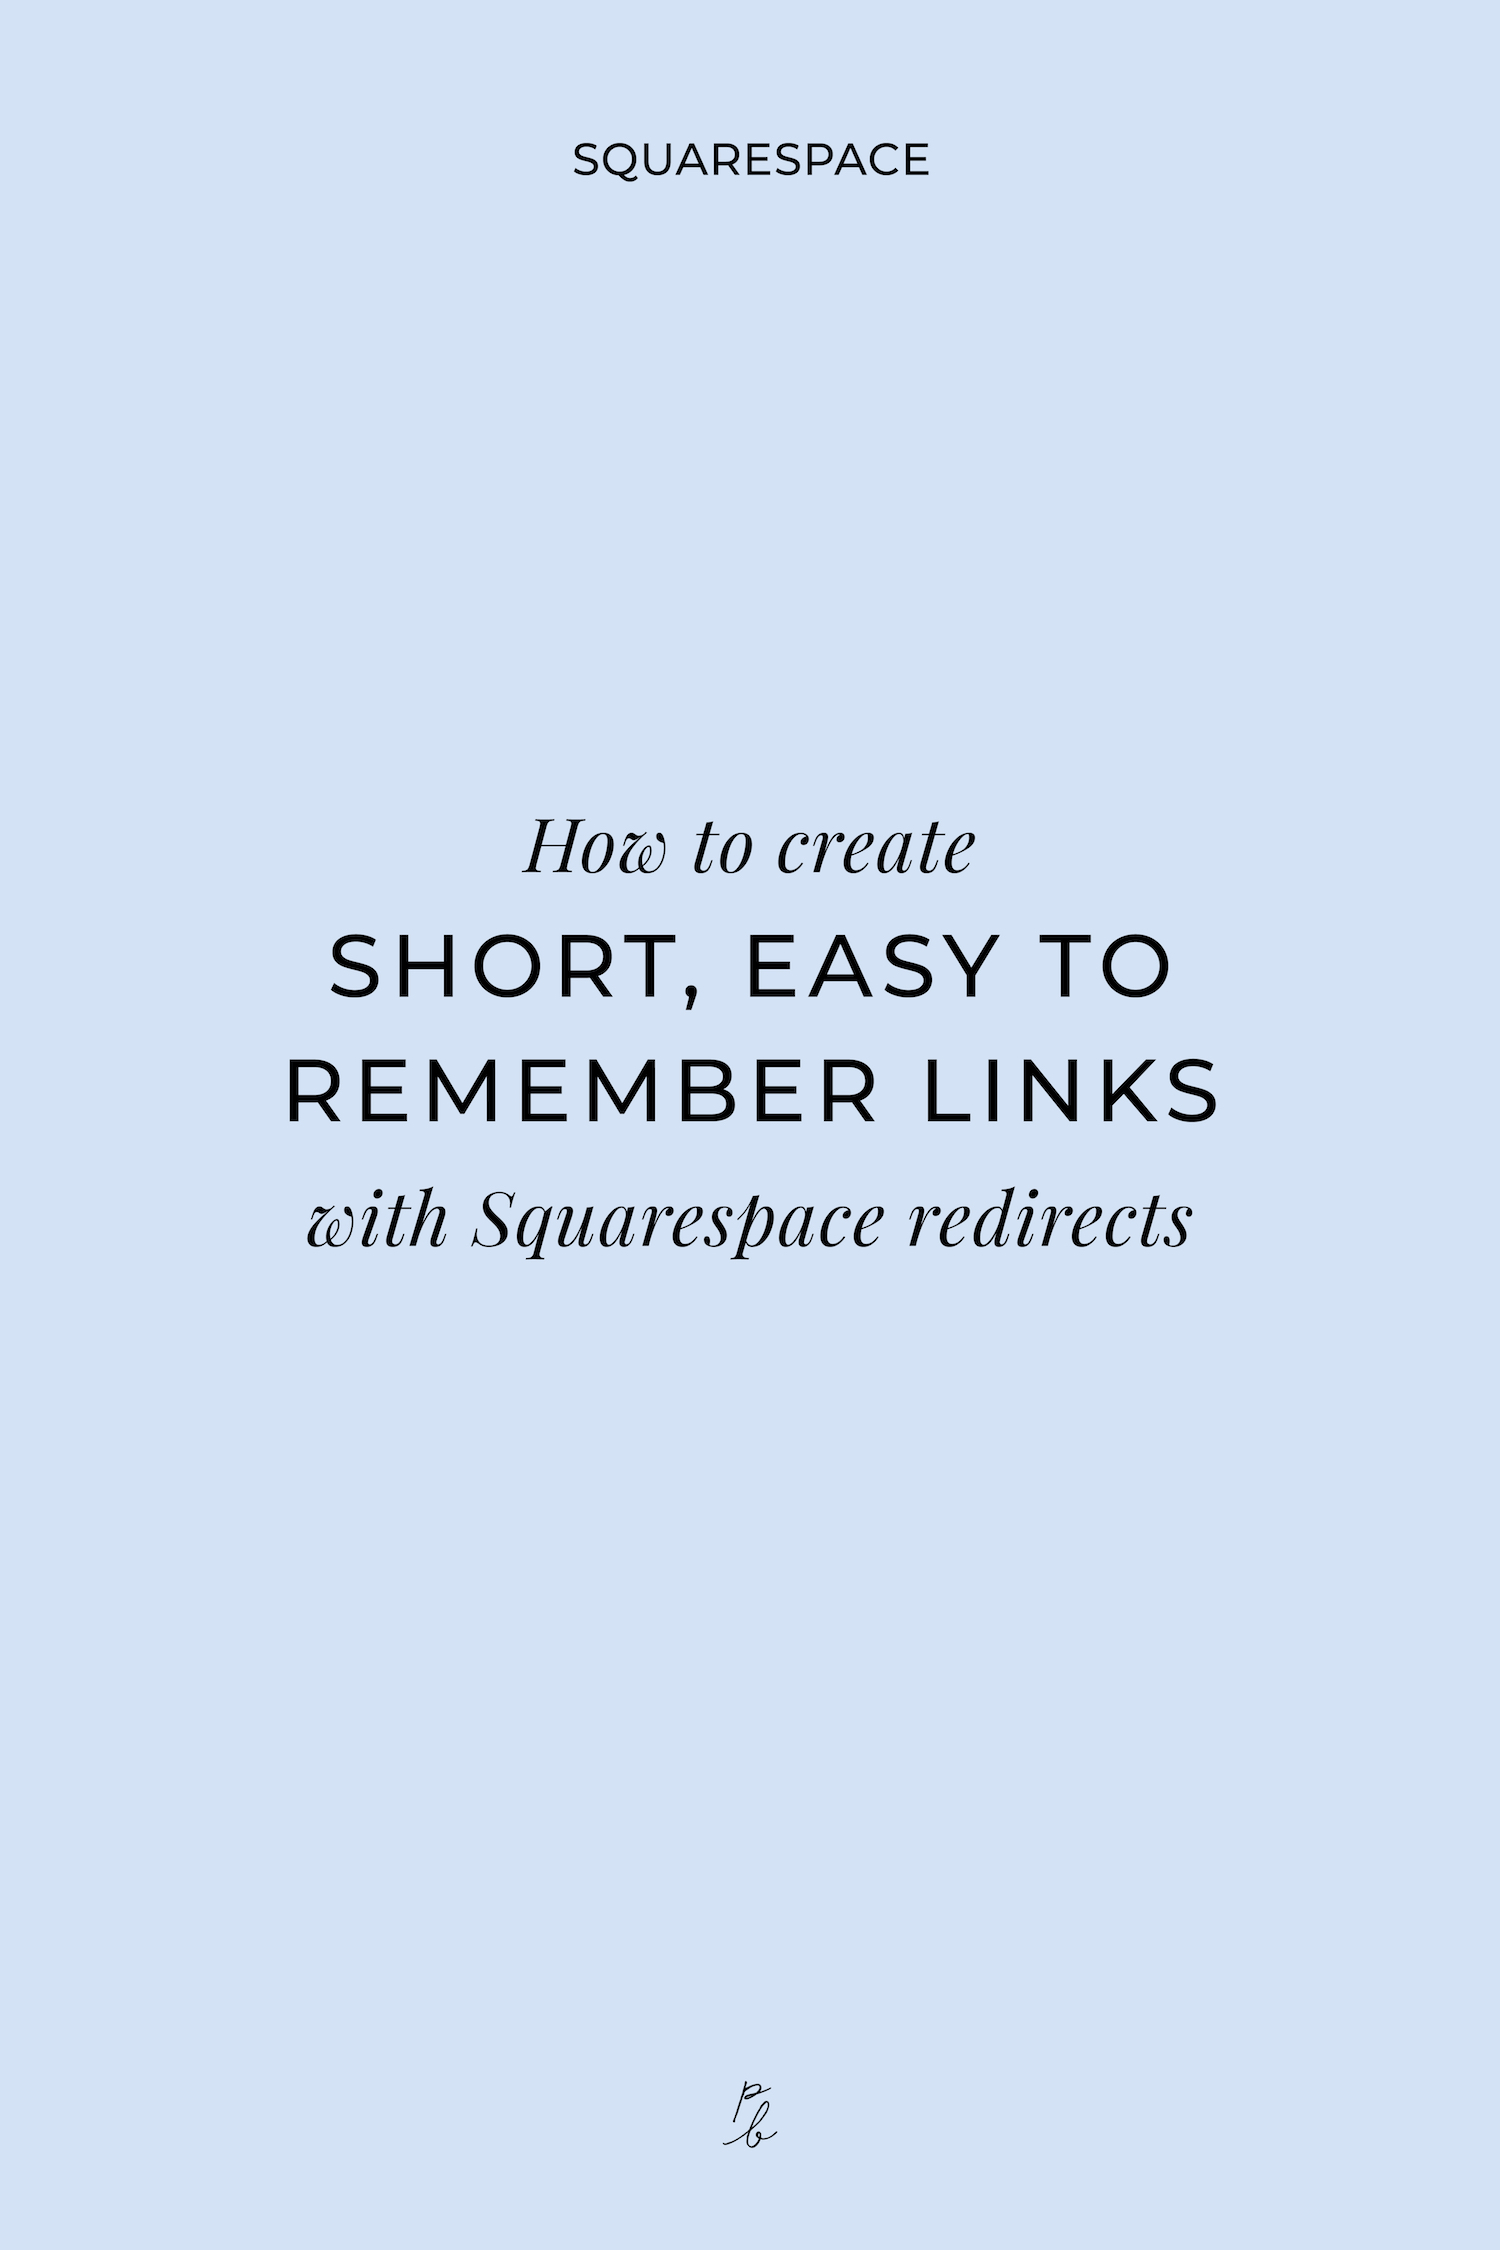 How to create short, easy-to-remember links with Squarespace redirects-03.jpg